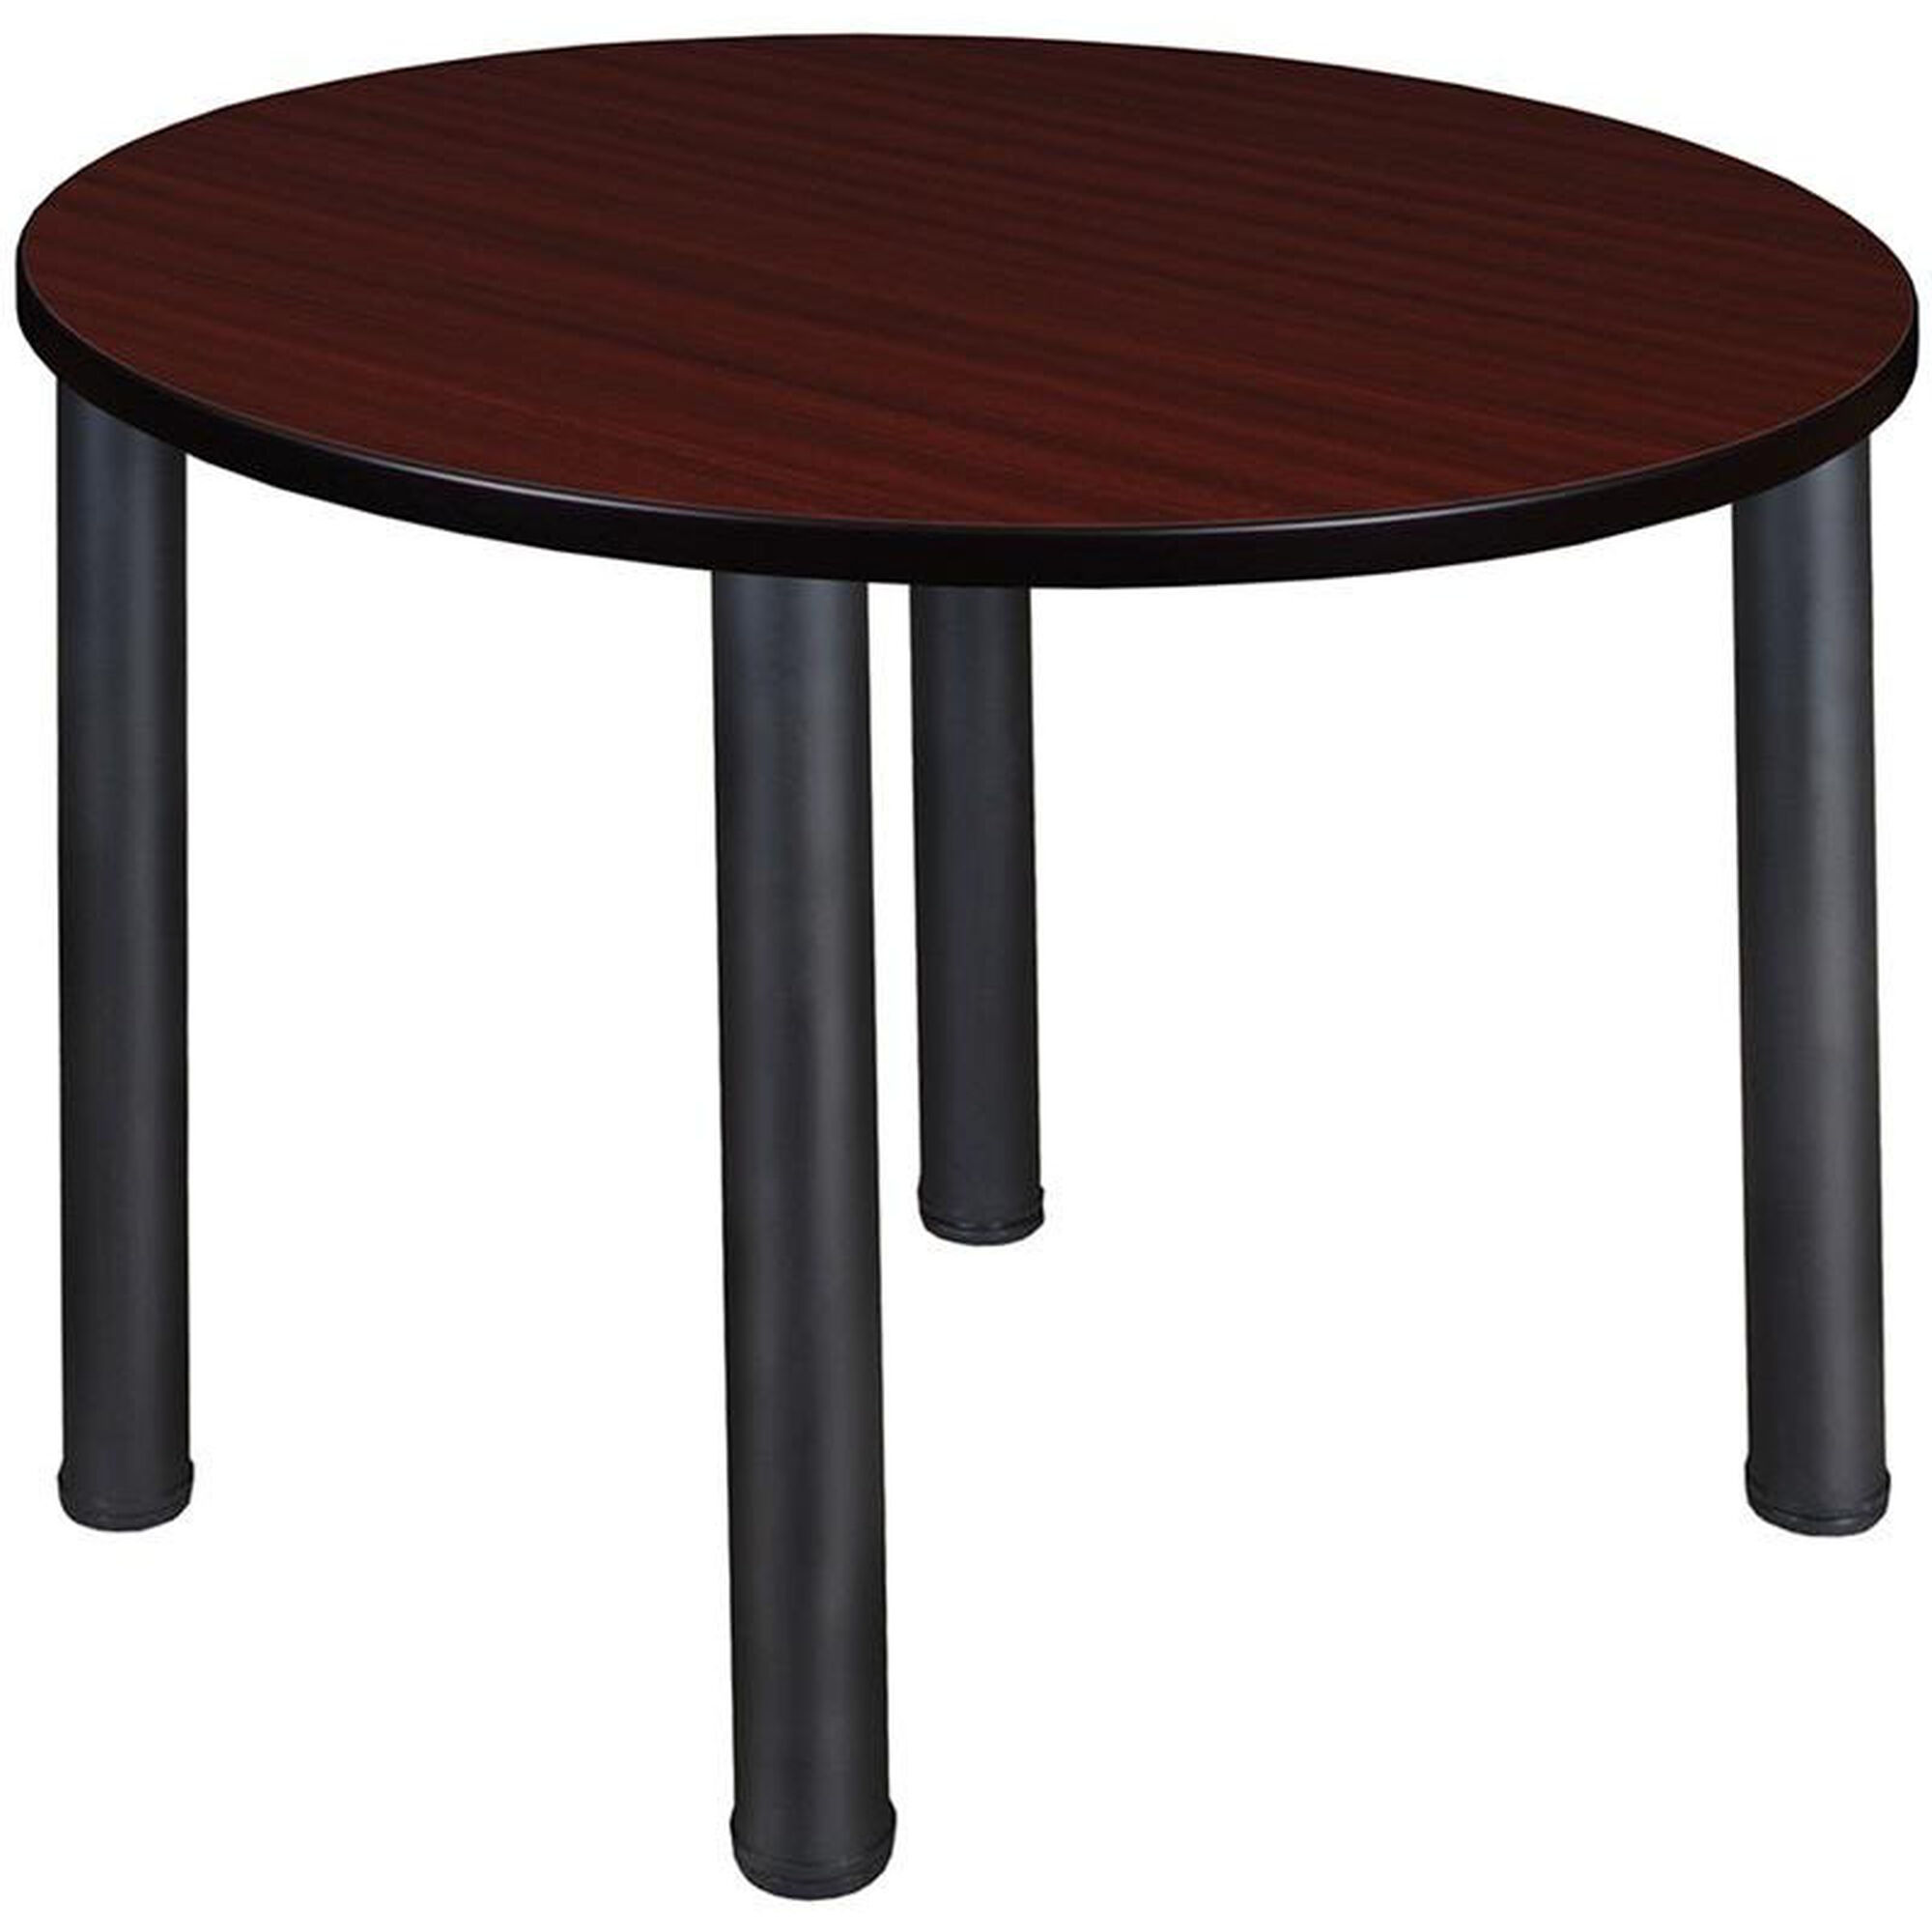 Kee 36'' Round Laminate Breakroom Table with PVC Edge - Mahogany with Black  Legs